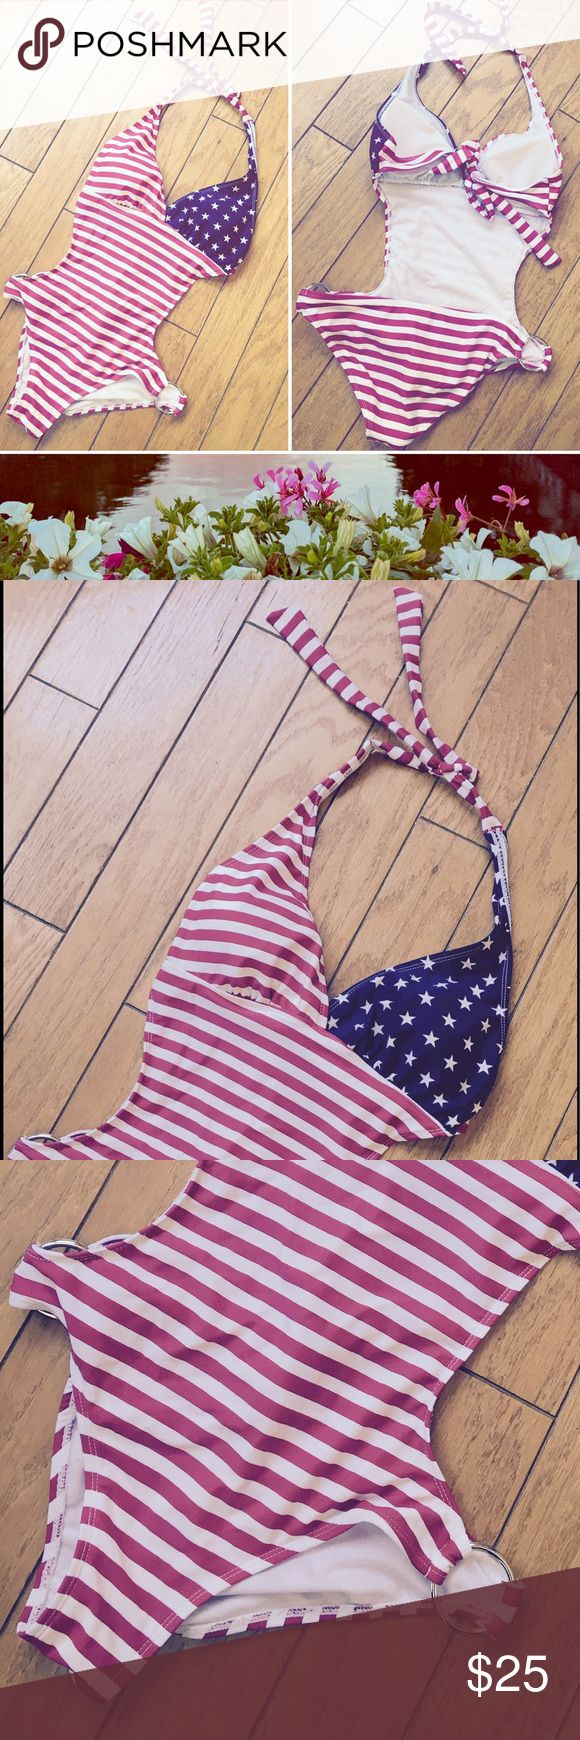 Marina West Patriotic Cut Out One Piece Swim Suit Marin West - Size medium (juniors). Fits sizes 3/4. Be patriotic & sexy this summer with this one piece with cut out sides, padded halter top, and silver rings on the sides. Bikini style bottom (medium coverage.) Please make me an offer if you're interested 😊 Marina West Swim One Pieces